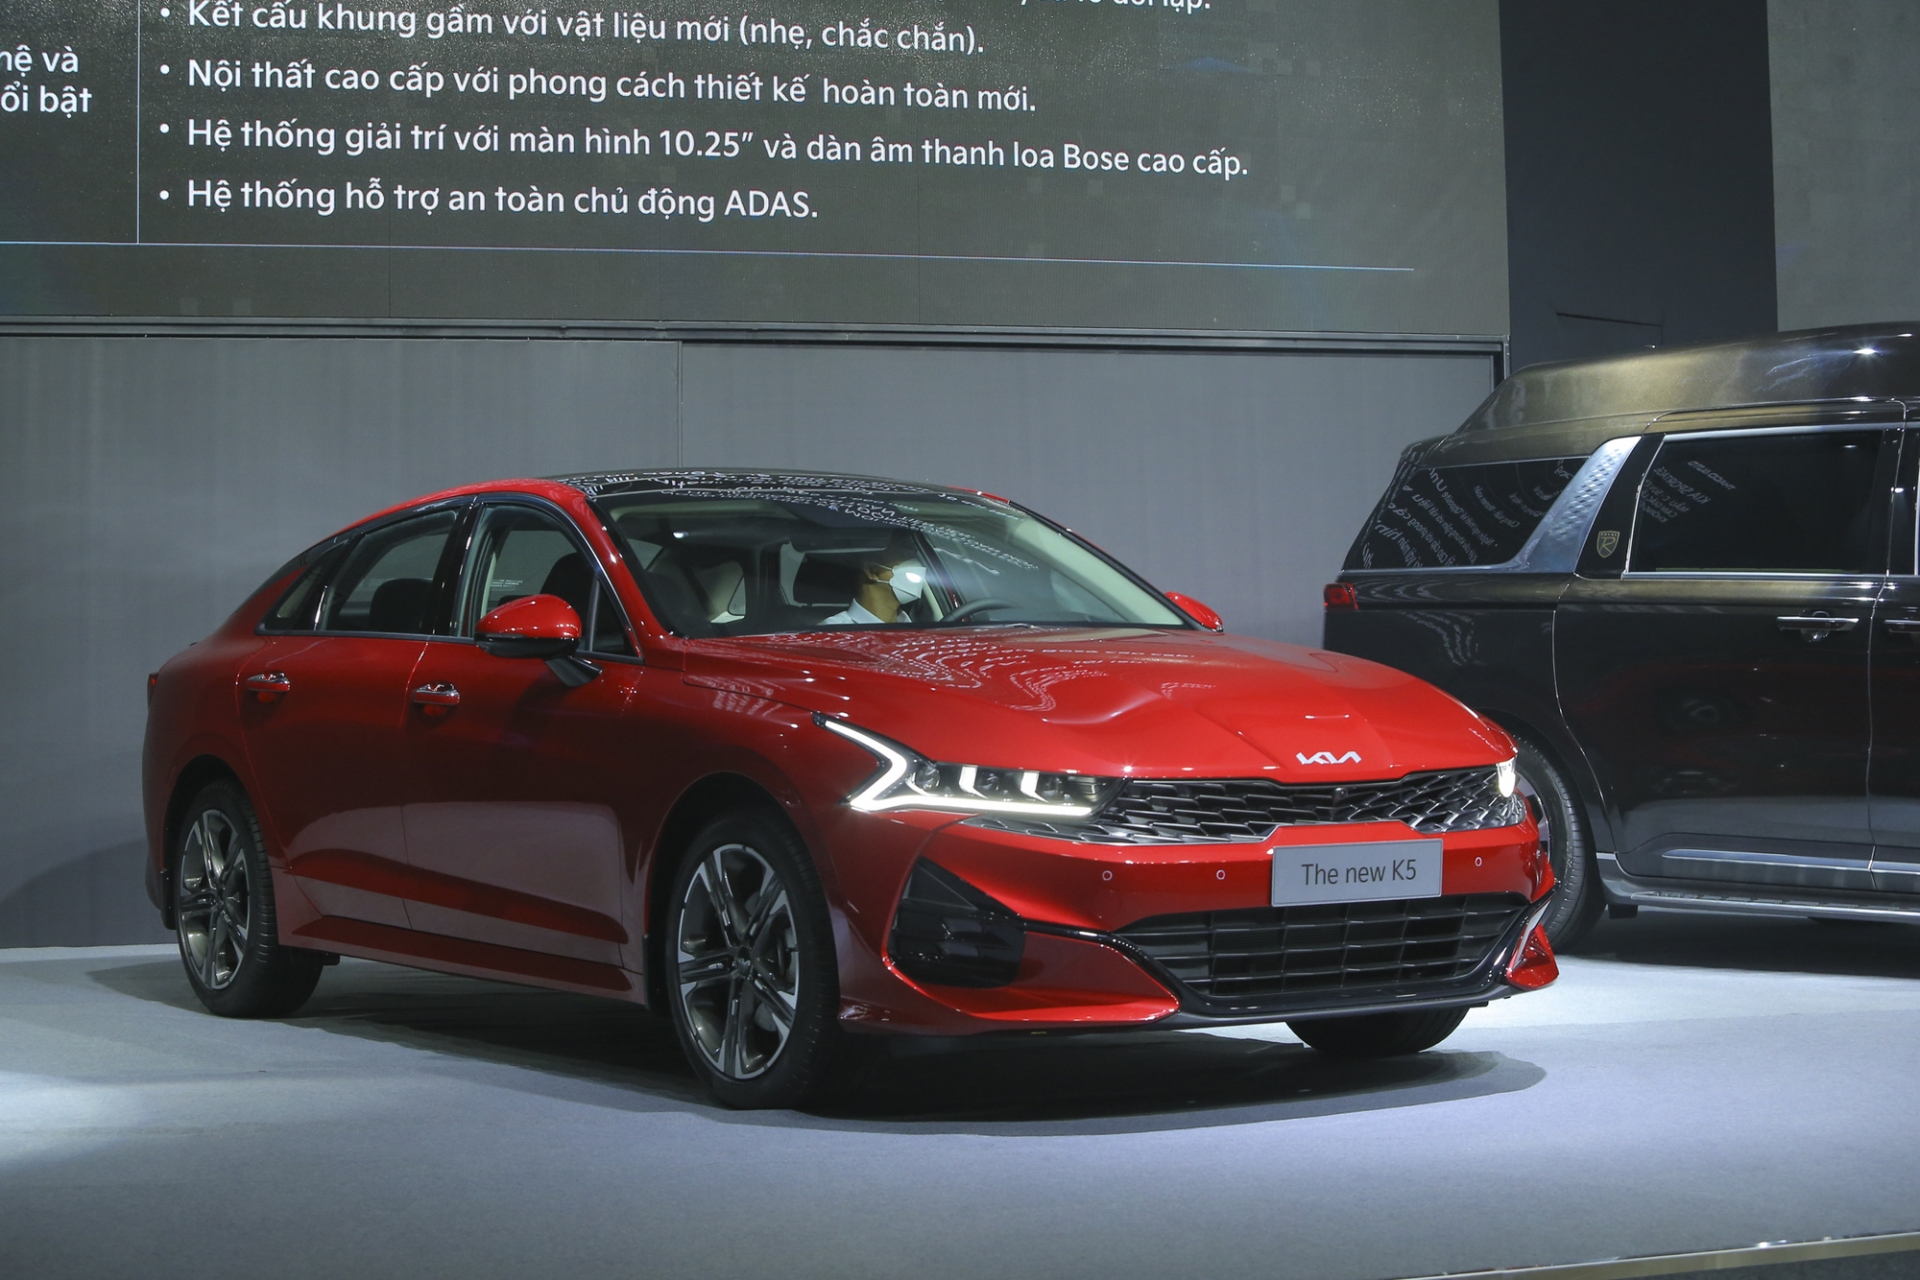 The sudden return of Kia K5: A serious competitor will knock out Vinfast Lux, threatening Toyota Camry 1